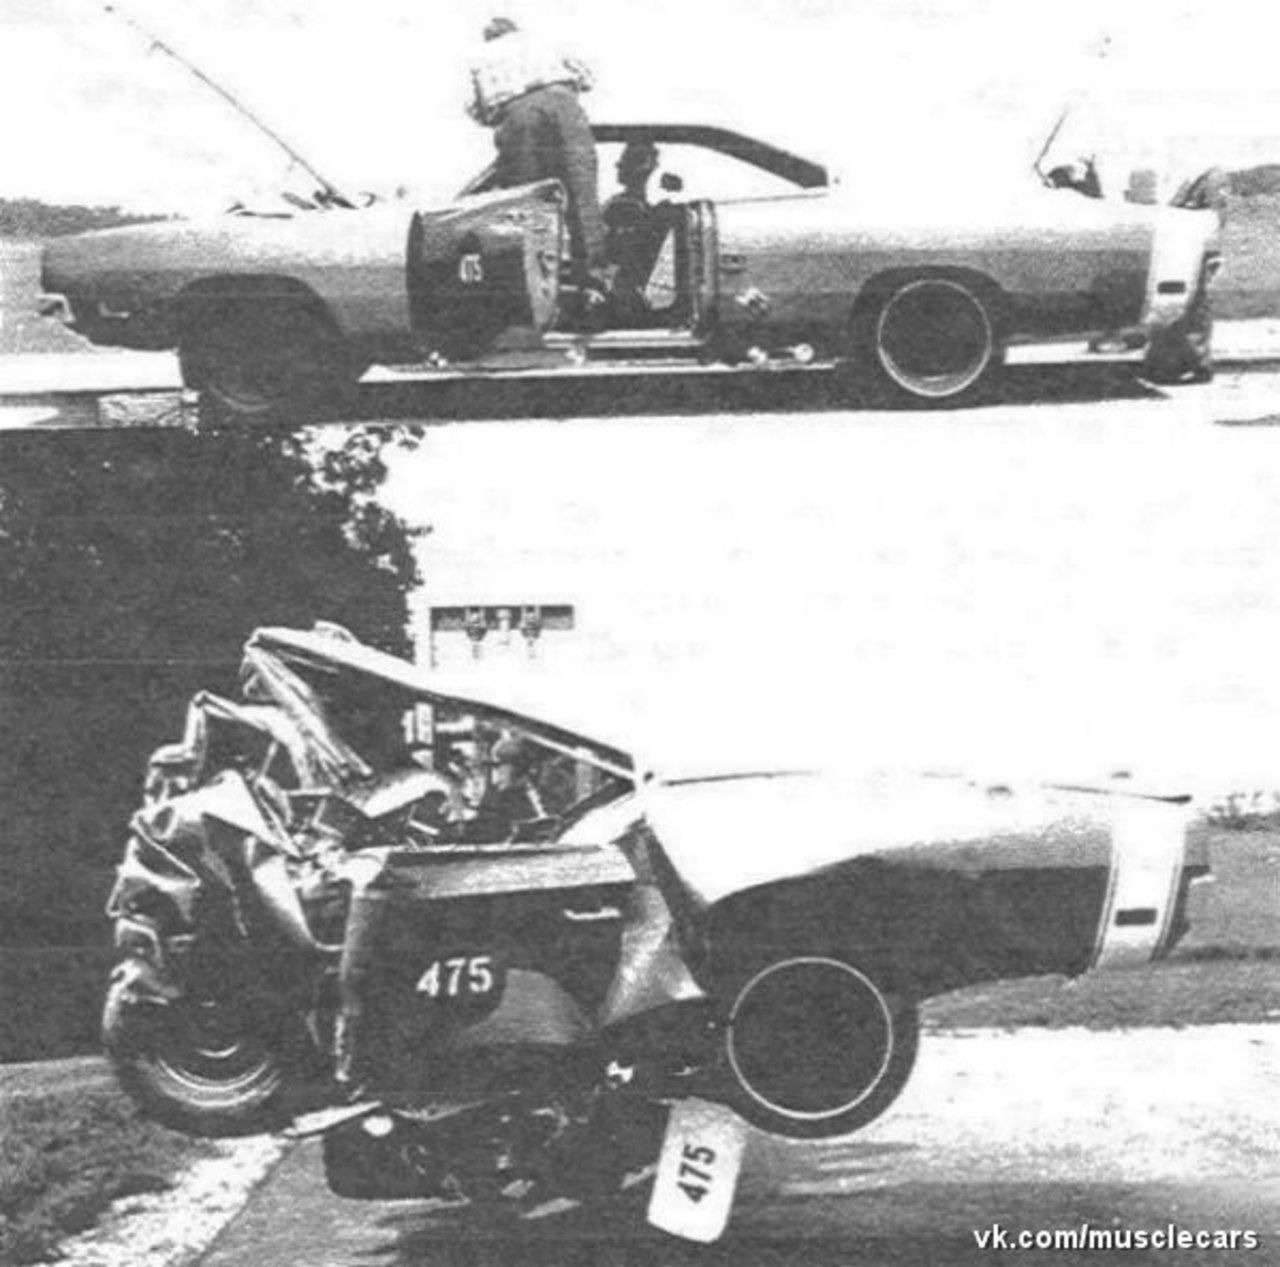 Motorcycle hits semi truck strange accident 31 12 2012 youtube - Dodge Charger 1969 Crash Test Hit The Wall